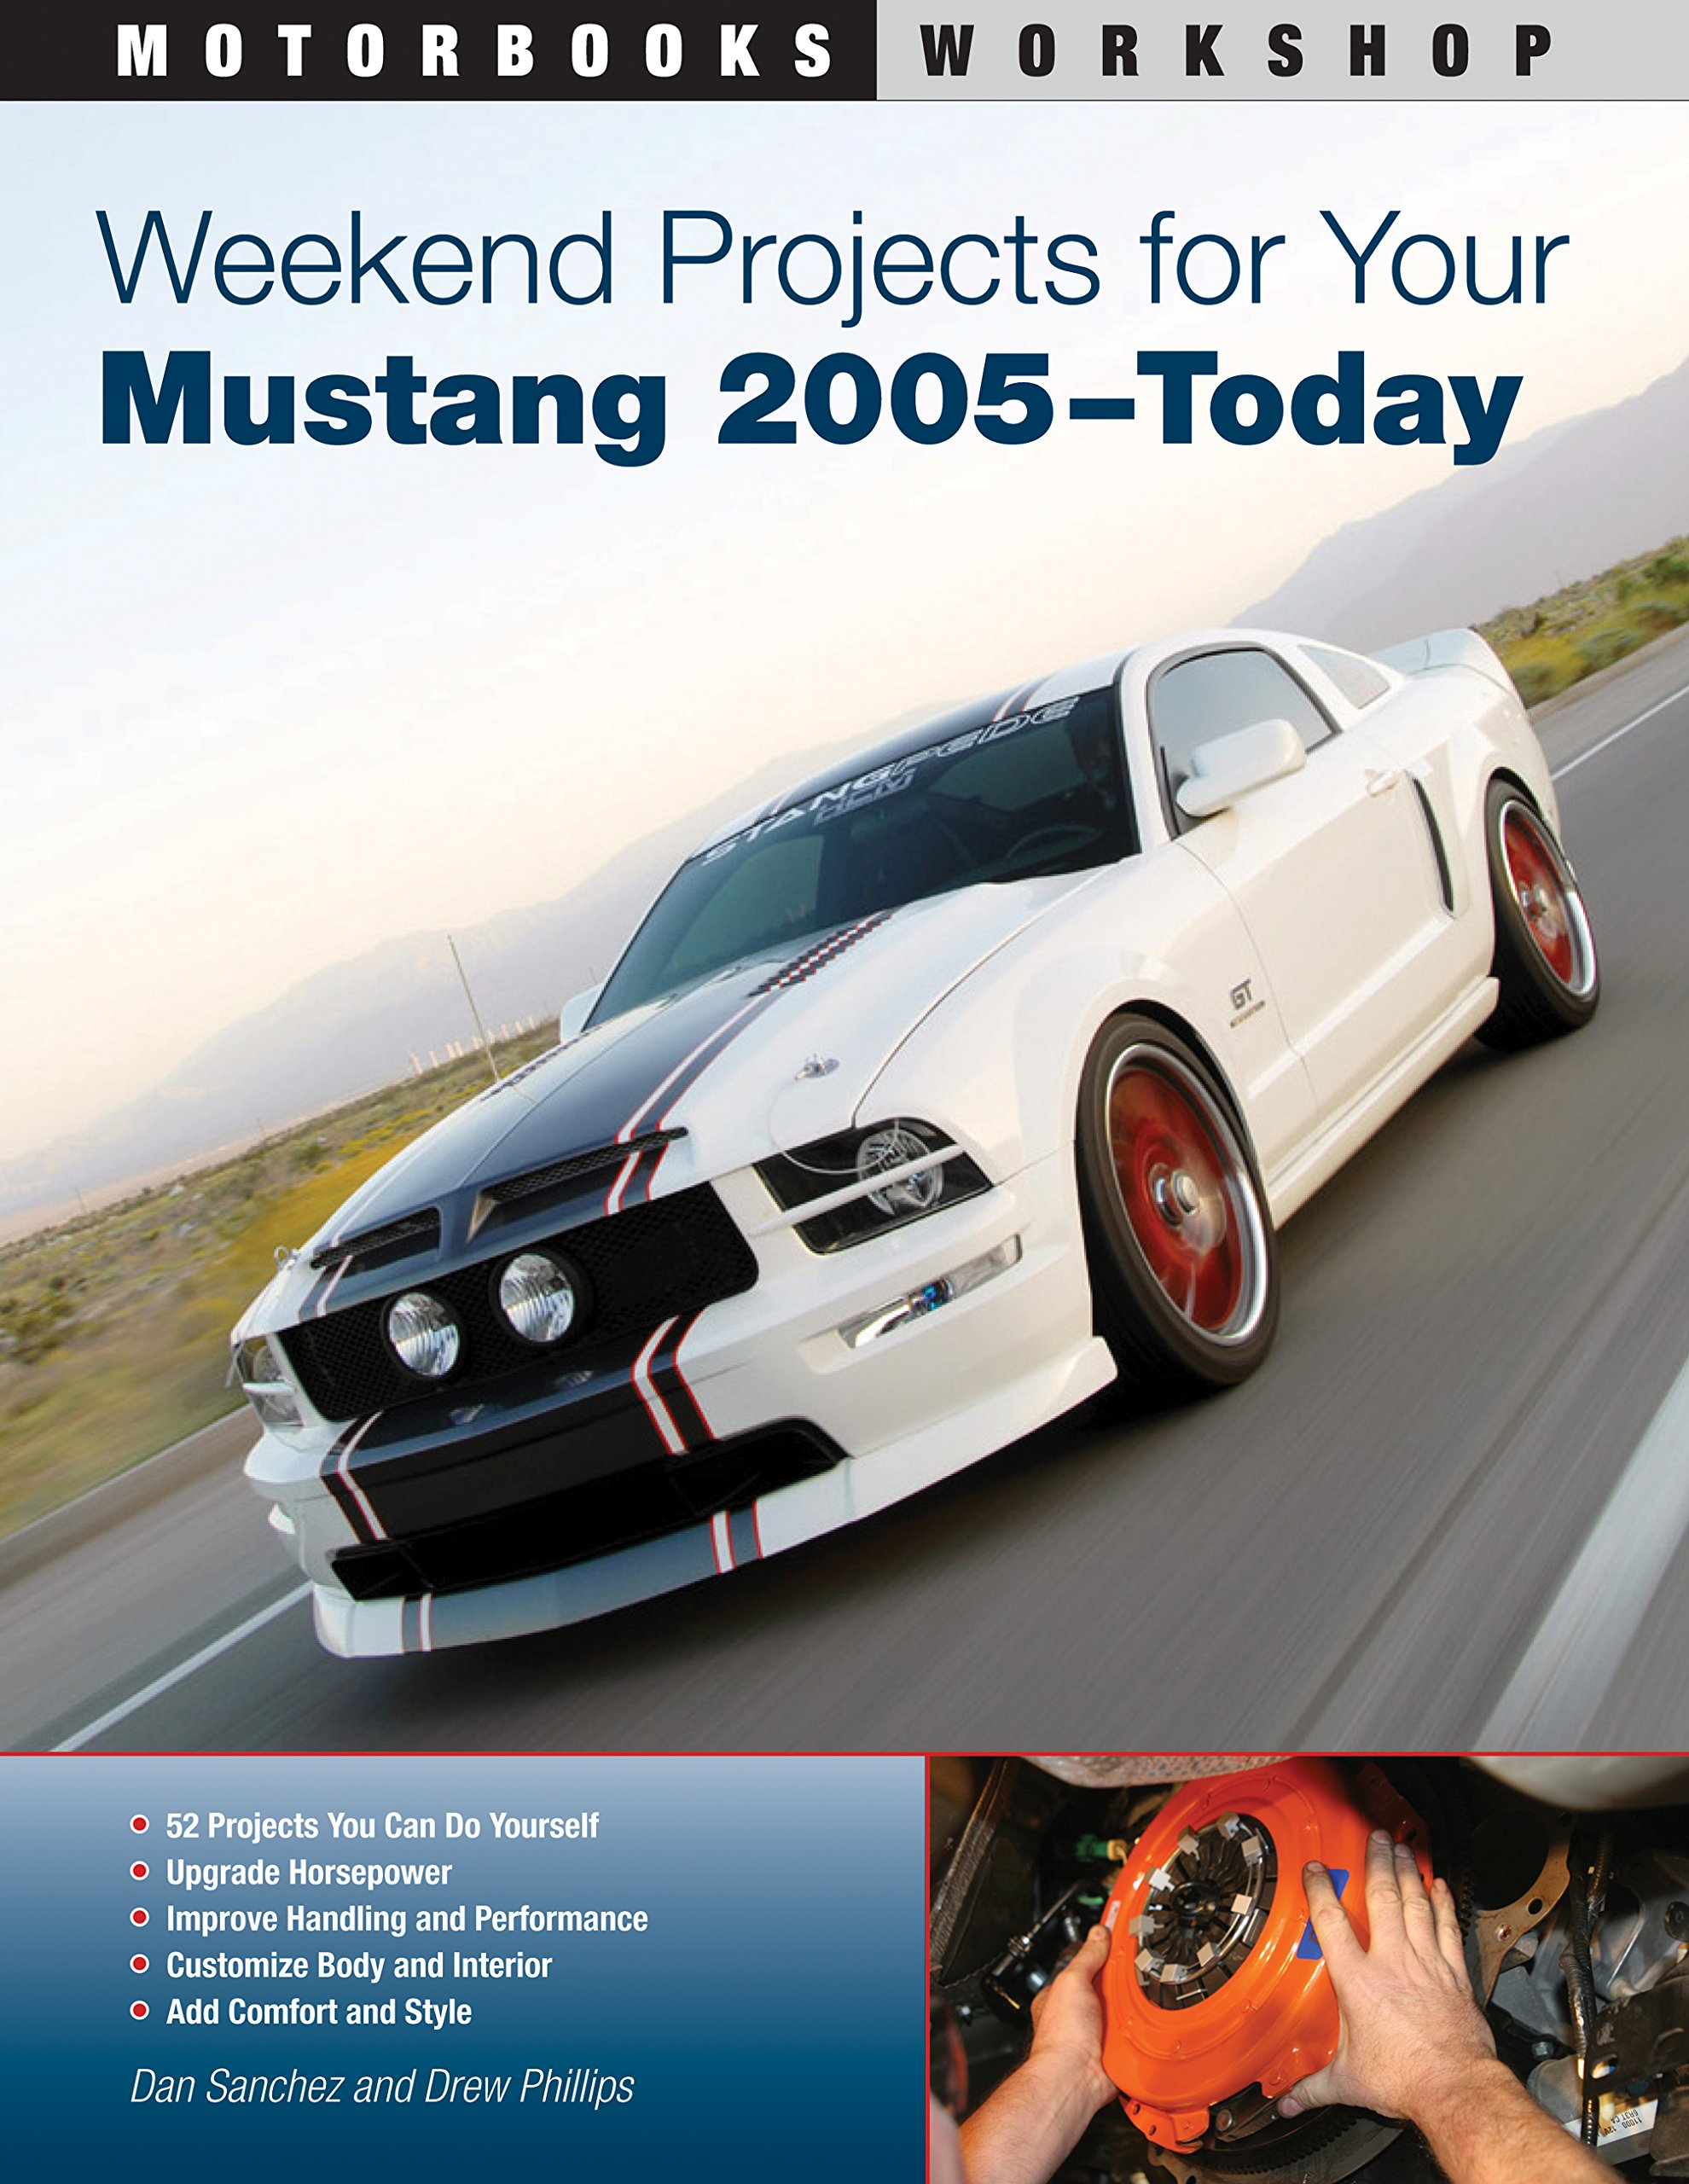 Weekend Projects for Your Mustang 2005-Today (Motorbooks Workshop): Dan  Sanchez, Drew Phillips: 9780760336854: Amazon.com: Books